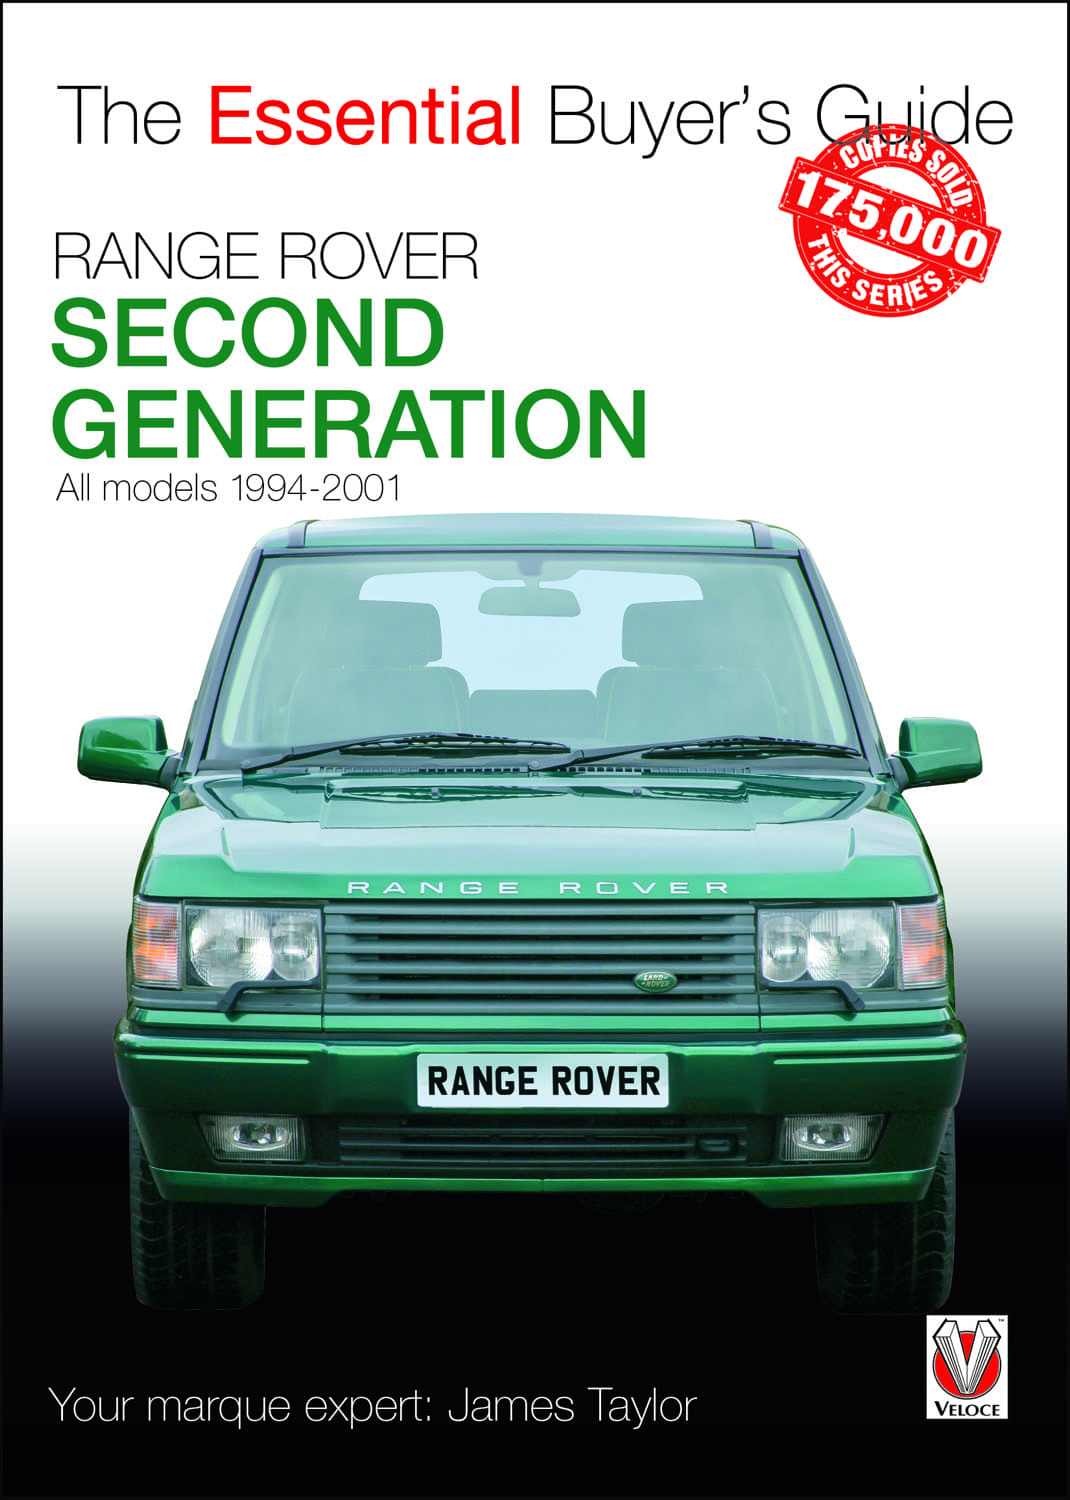 Range Rover 2nd Generarion - The Essential Buyer's Guide cover